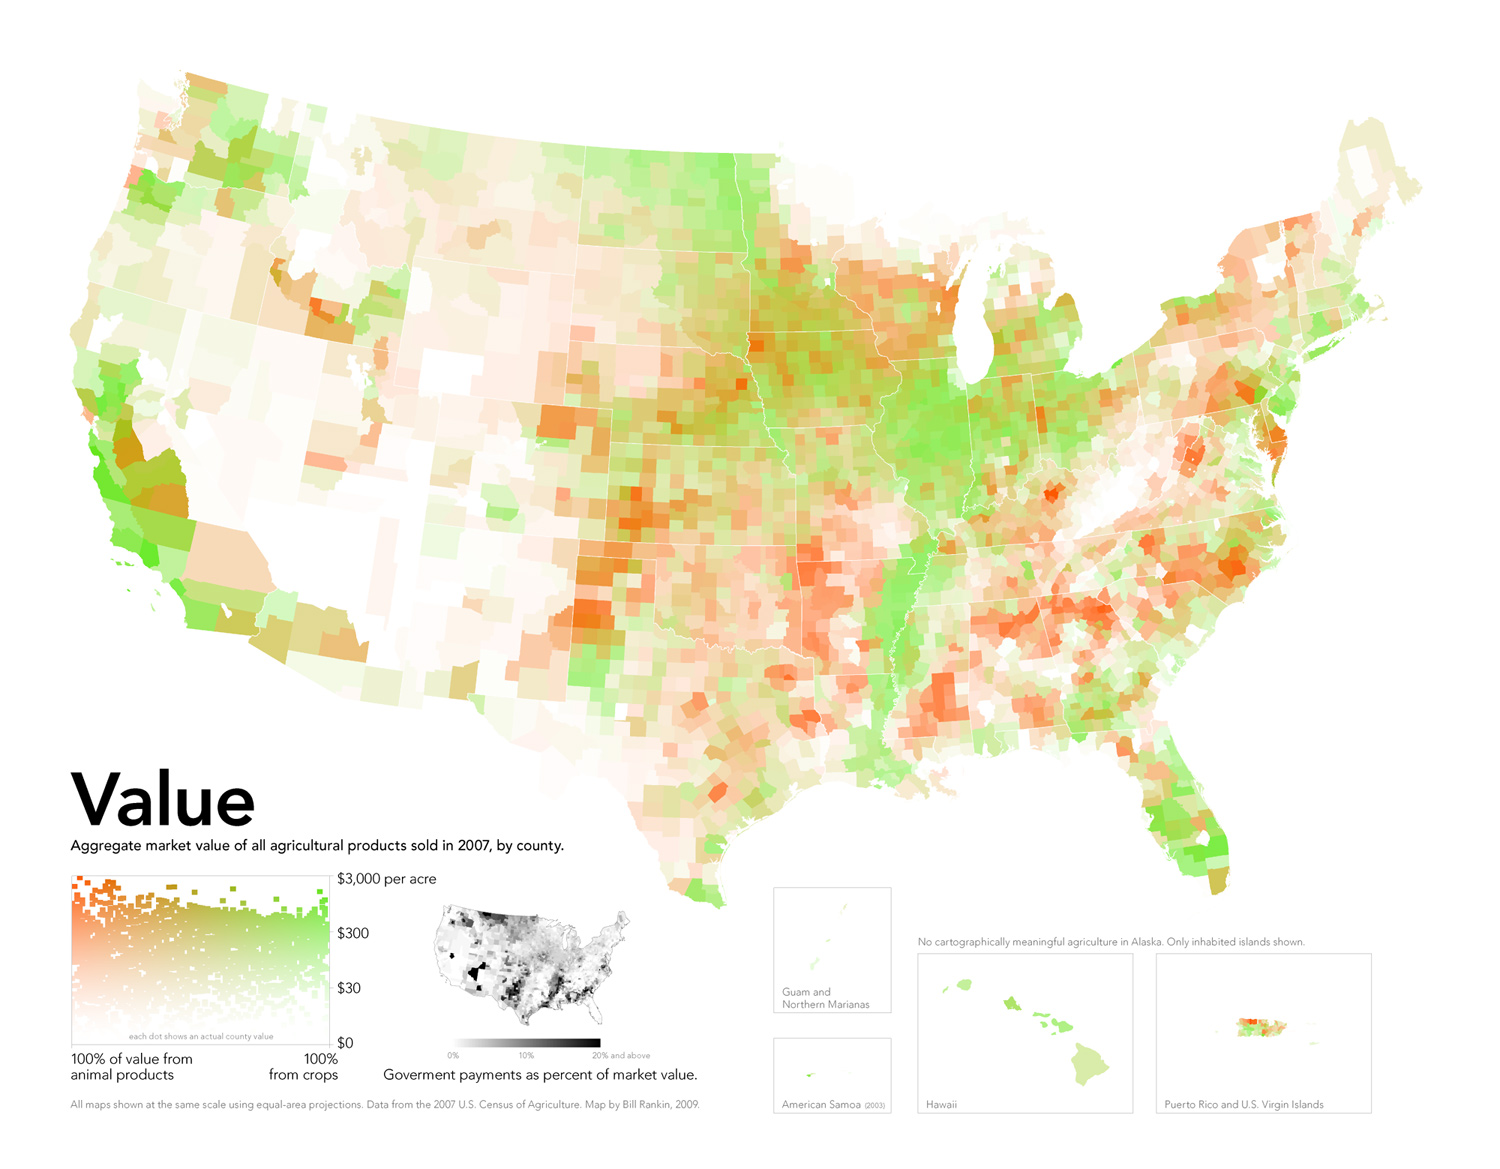 A map showing the aggregate market value of all agricultural products sold by county in the United States. Data comes from the 2007 U.S. Census of Agriculture and USDA.